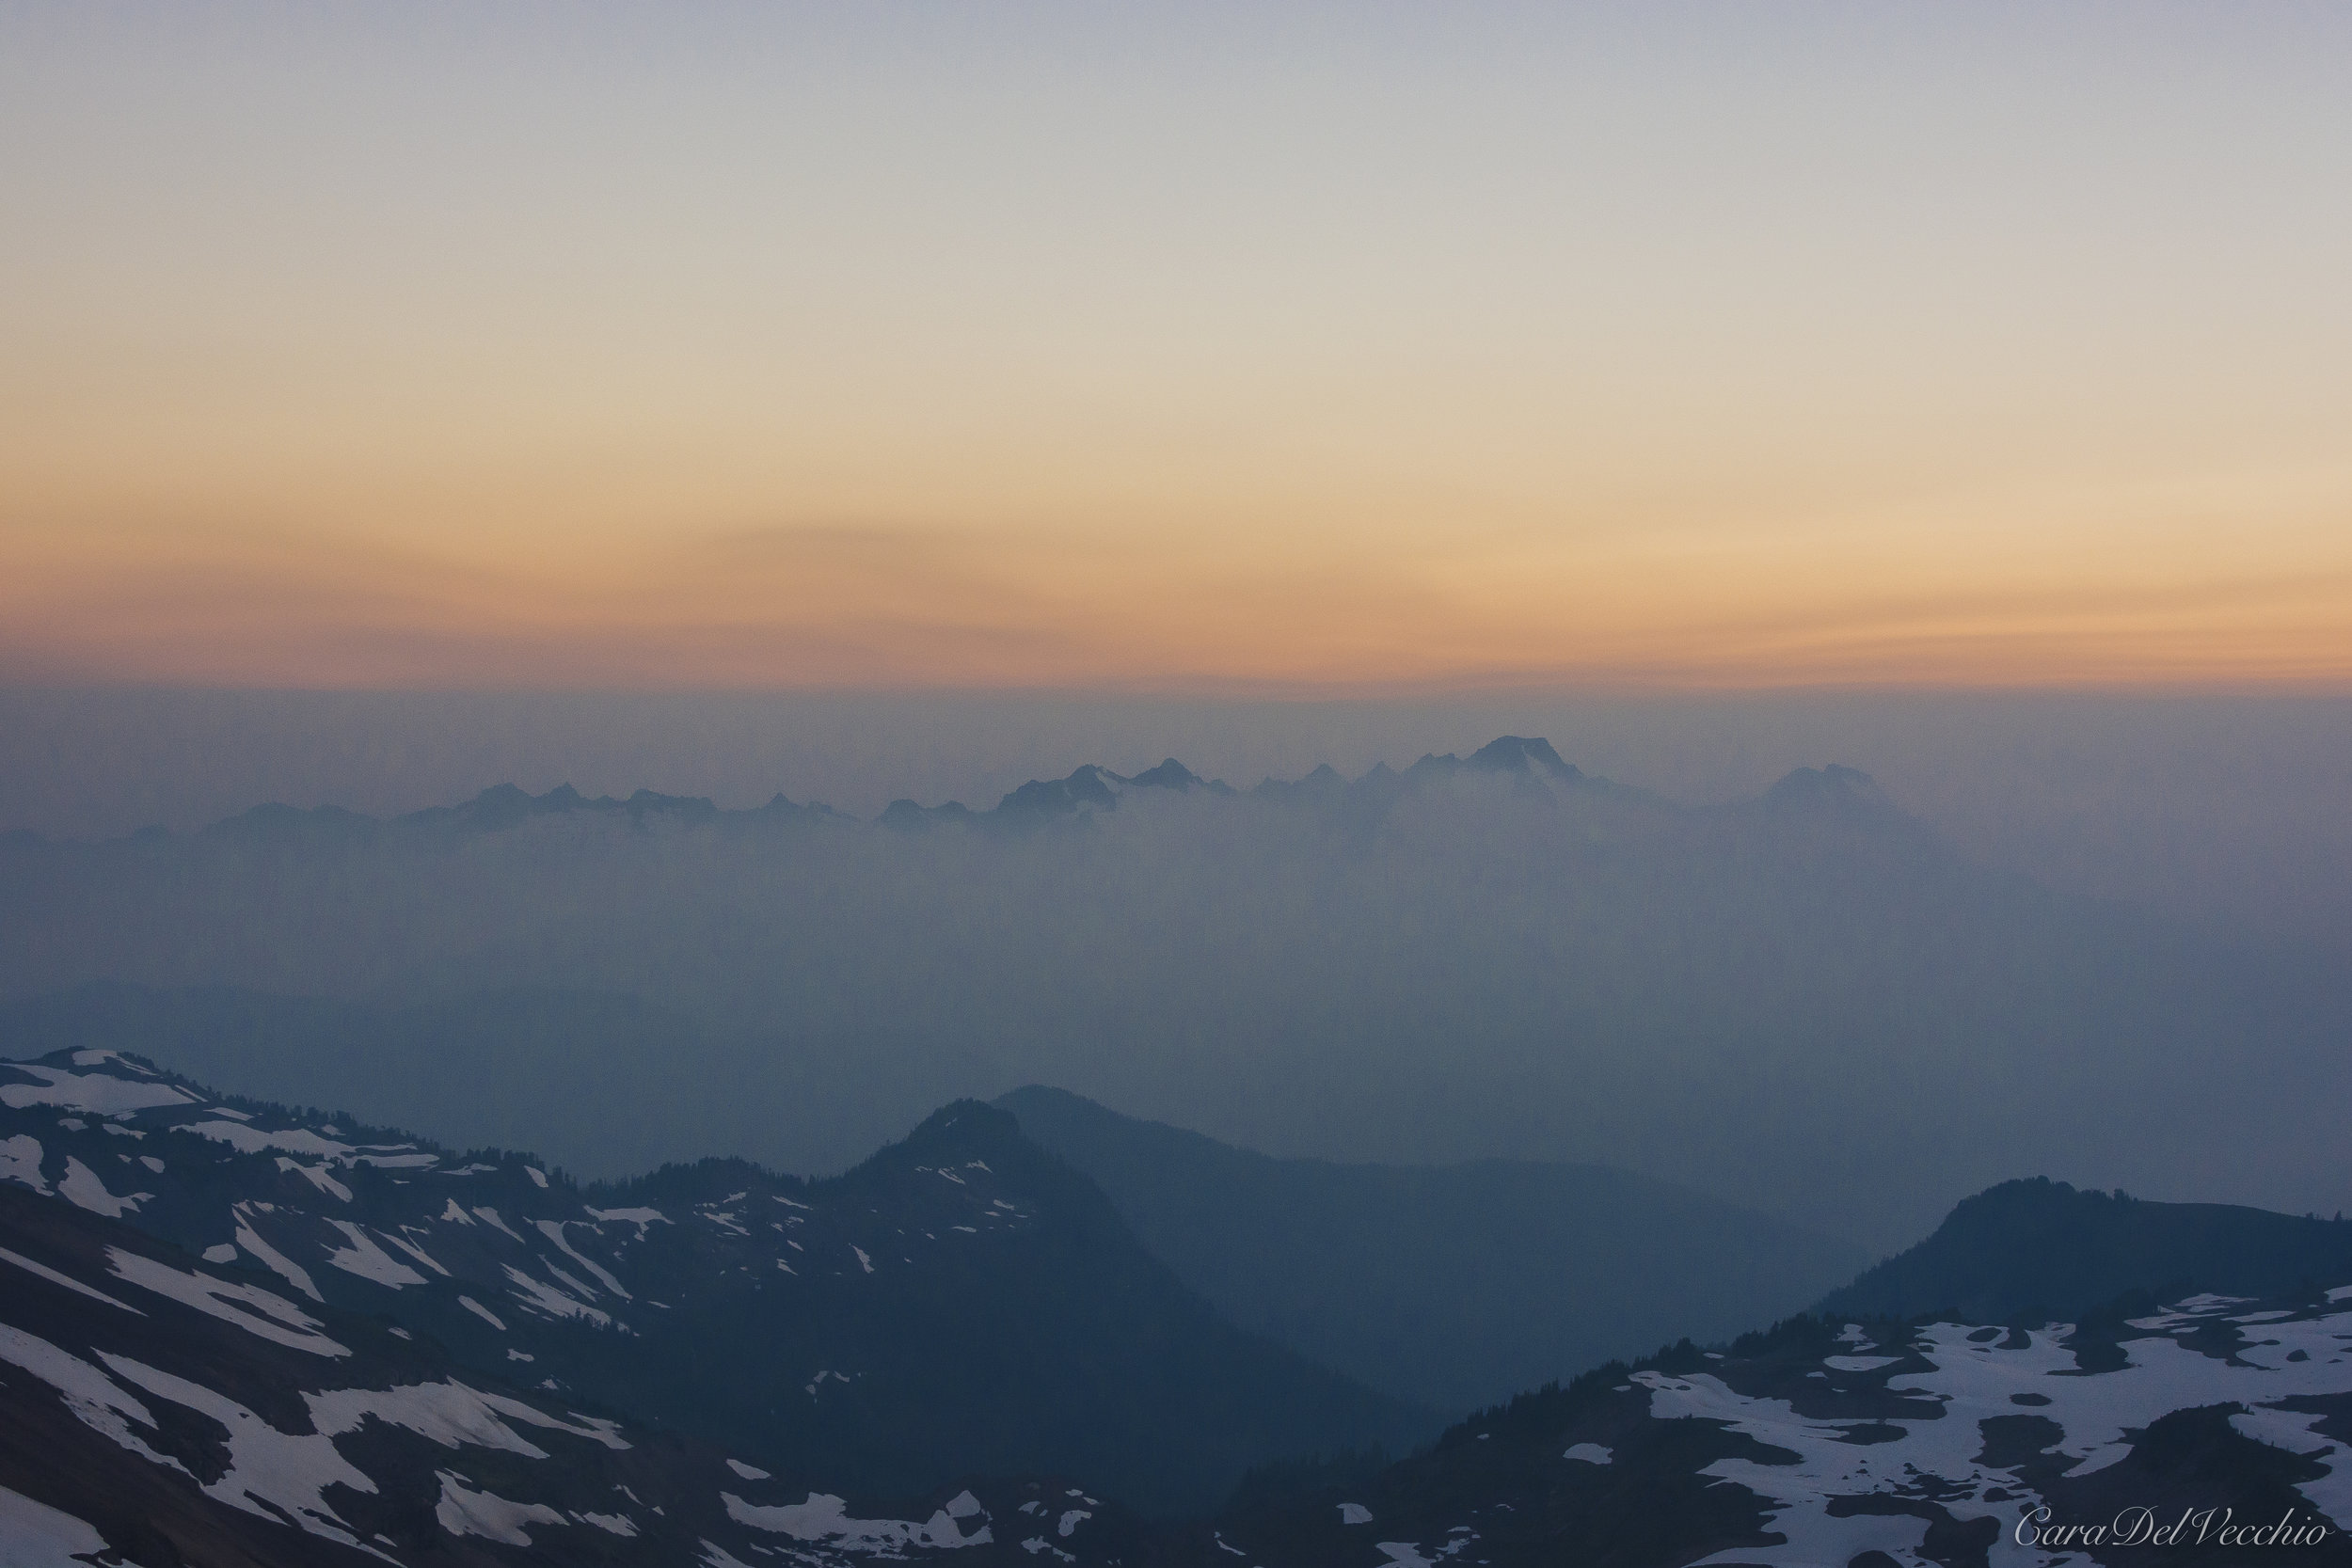 Smoke from over a million-acre wildfire in British Columbia painted the vista in varying shades of gray.